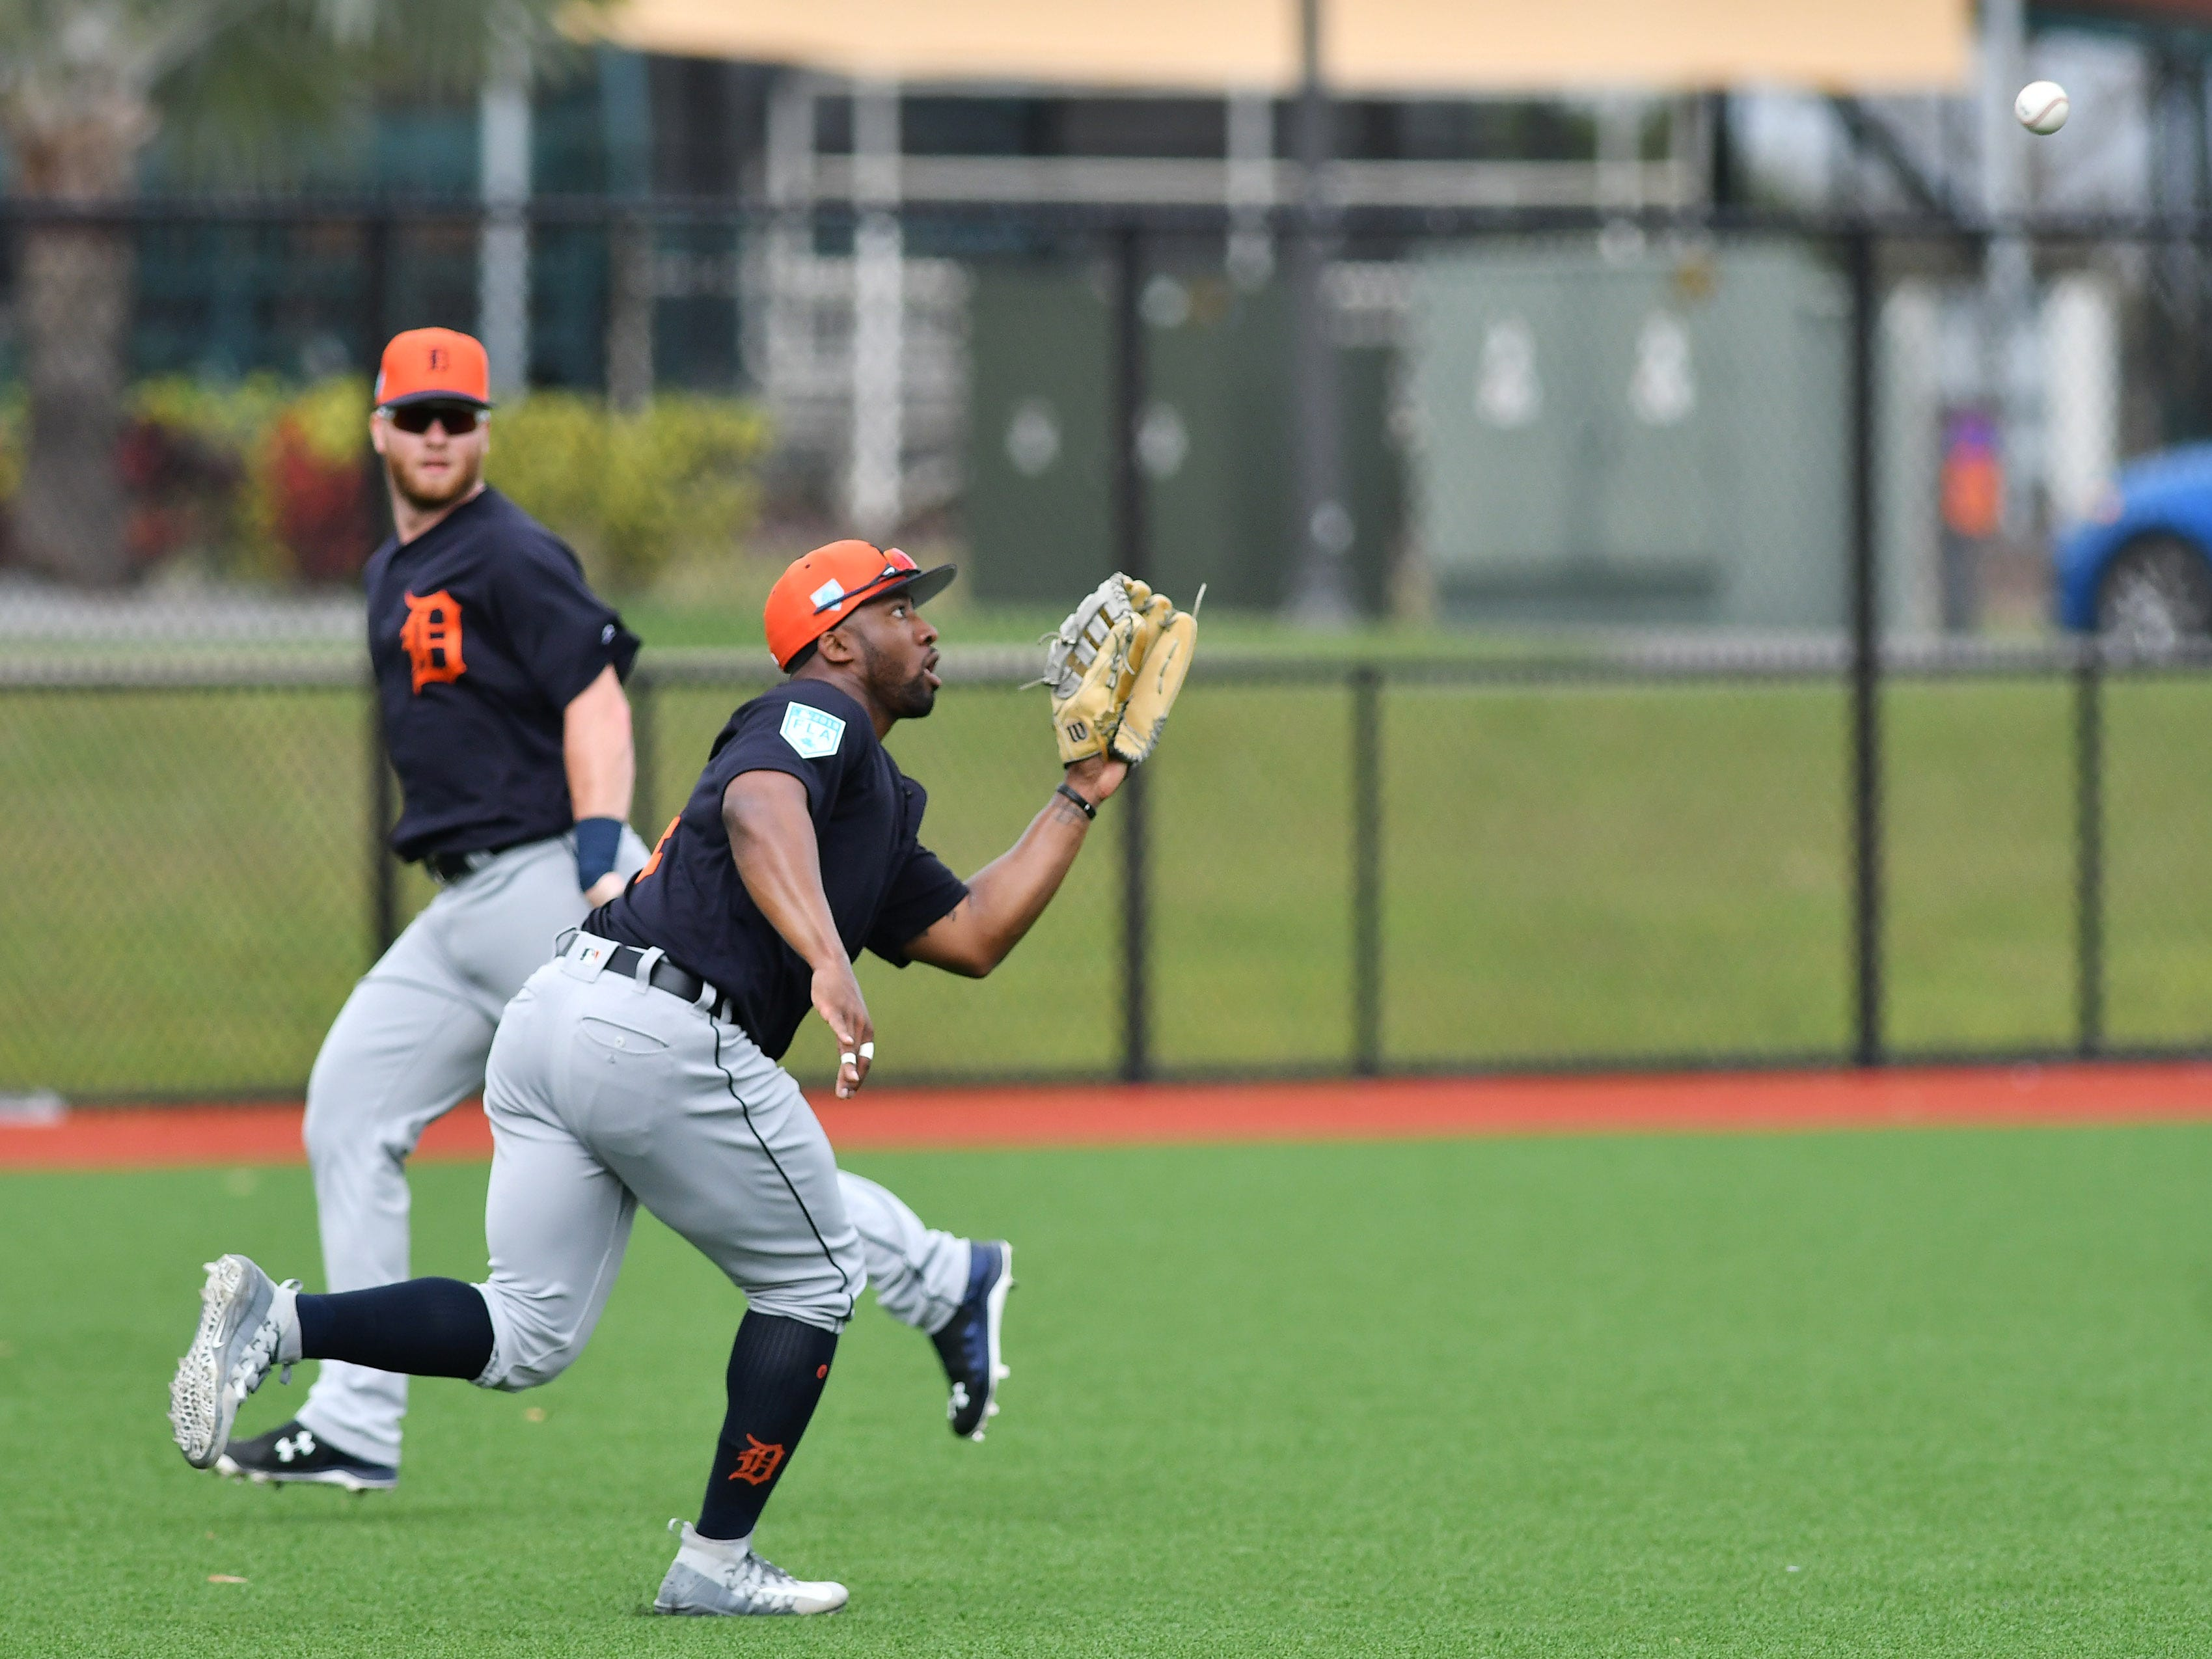 Tigers outfielder Christin Stewart makes a running catch during fly ball drills.